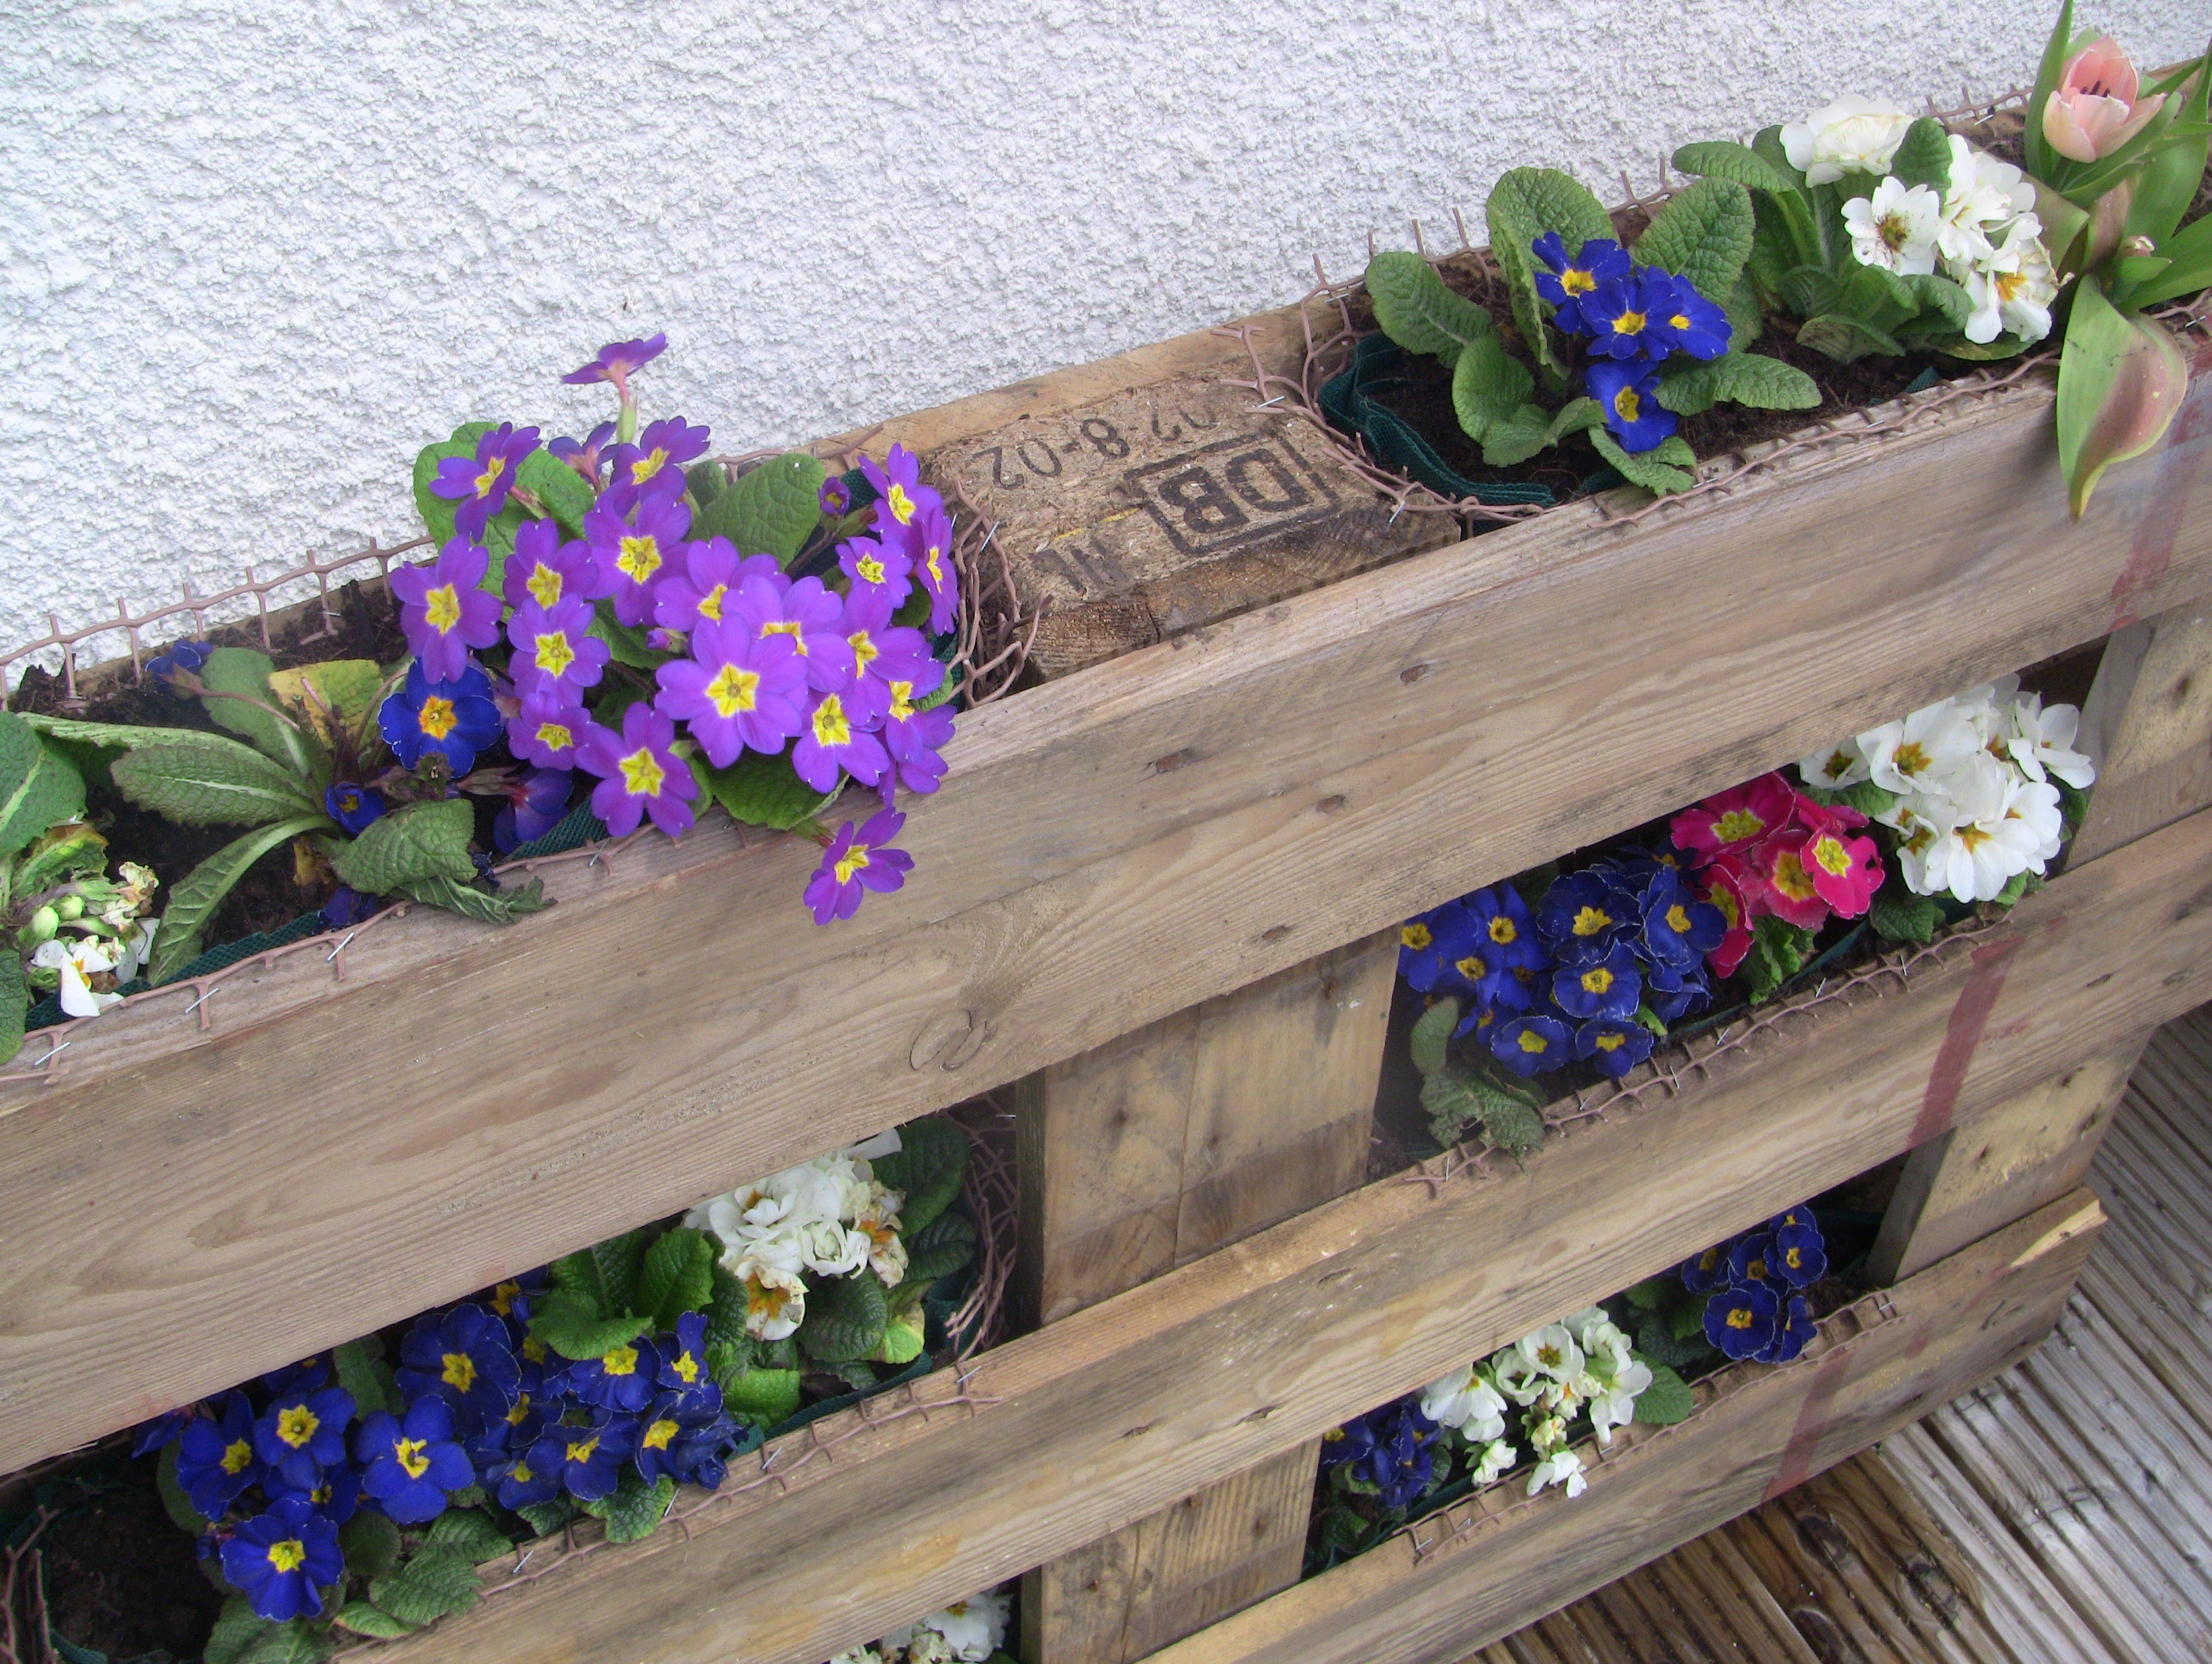 Upcycled wooden pallet vertical gardening ideas shabbyshe for How to make a vertical garden using pallets